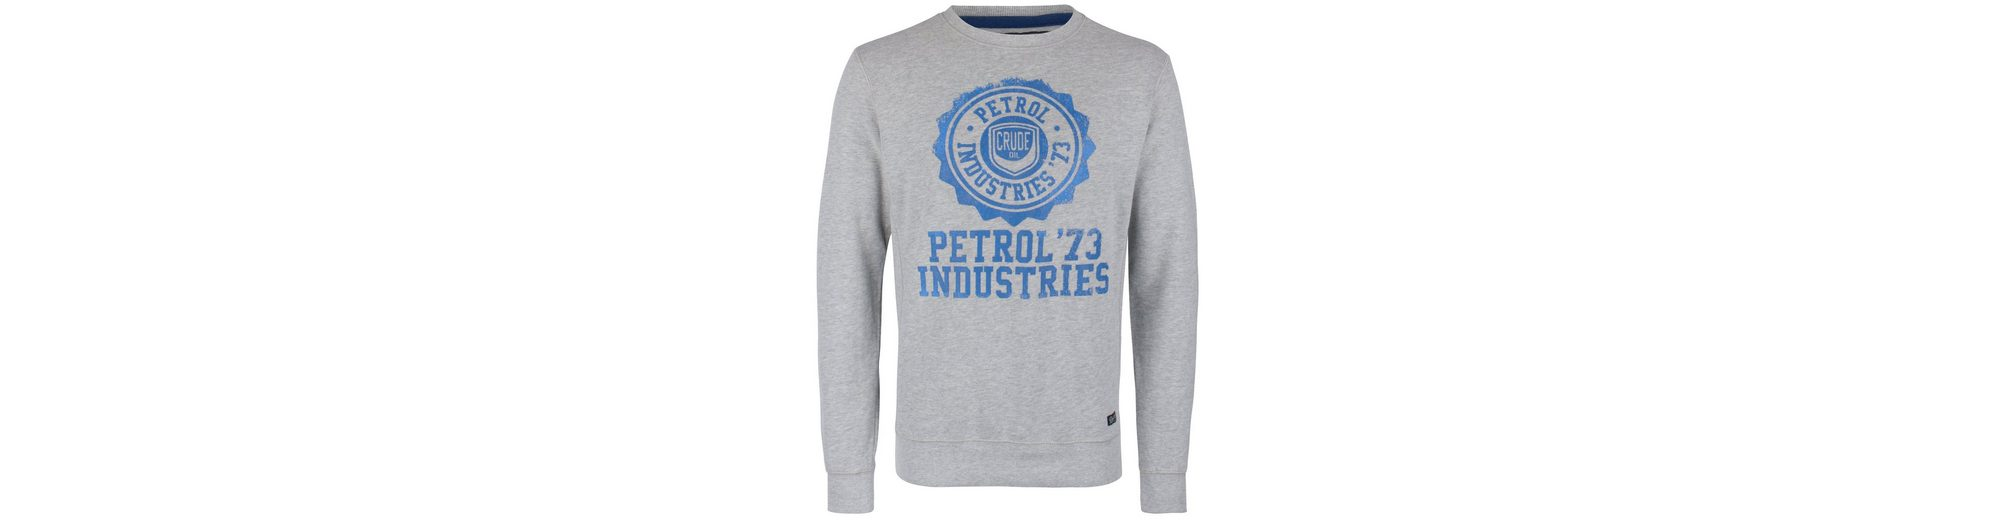 Petrol Petrol Industries Industries Pullover an75gxz